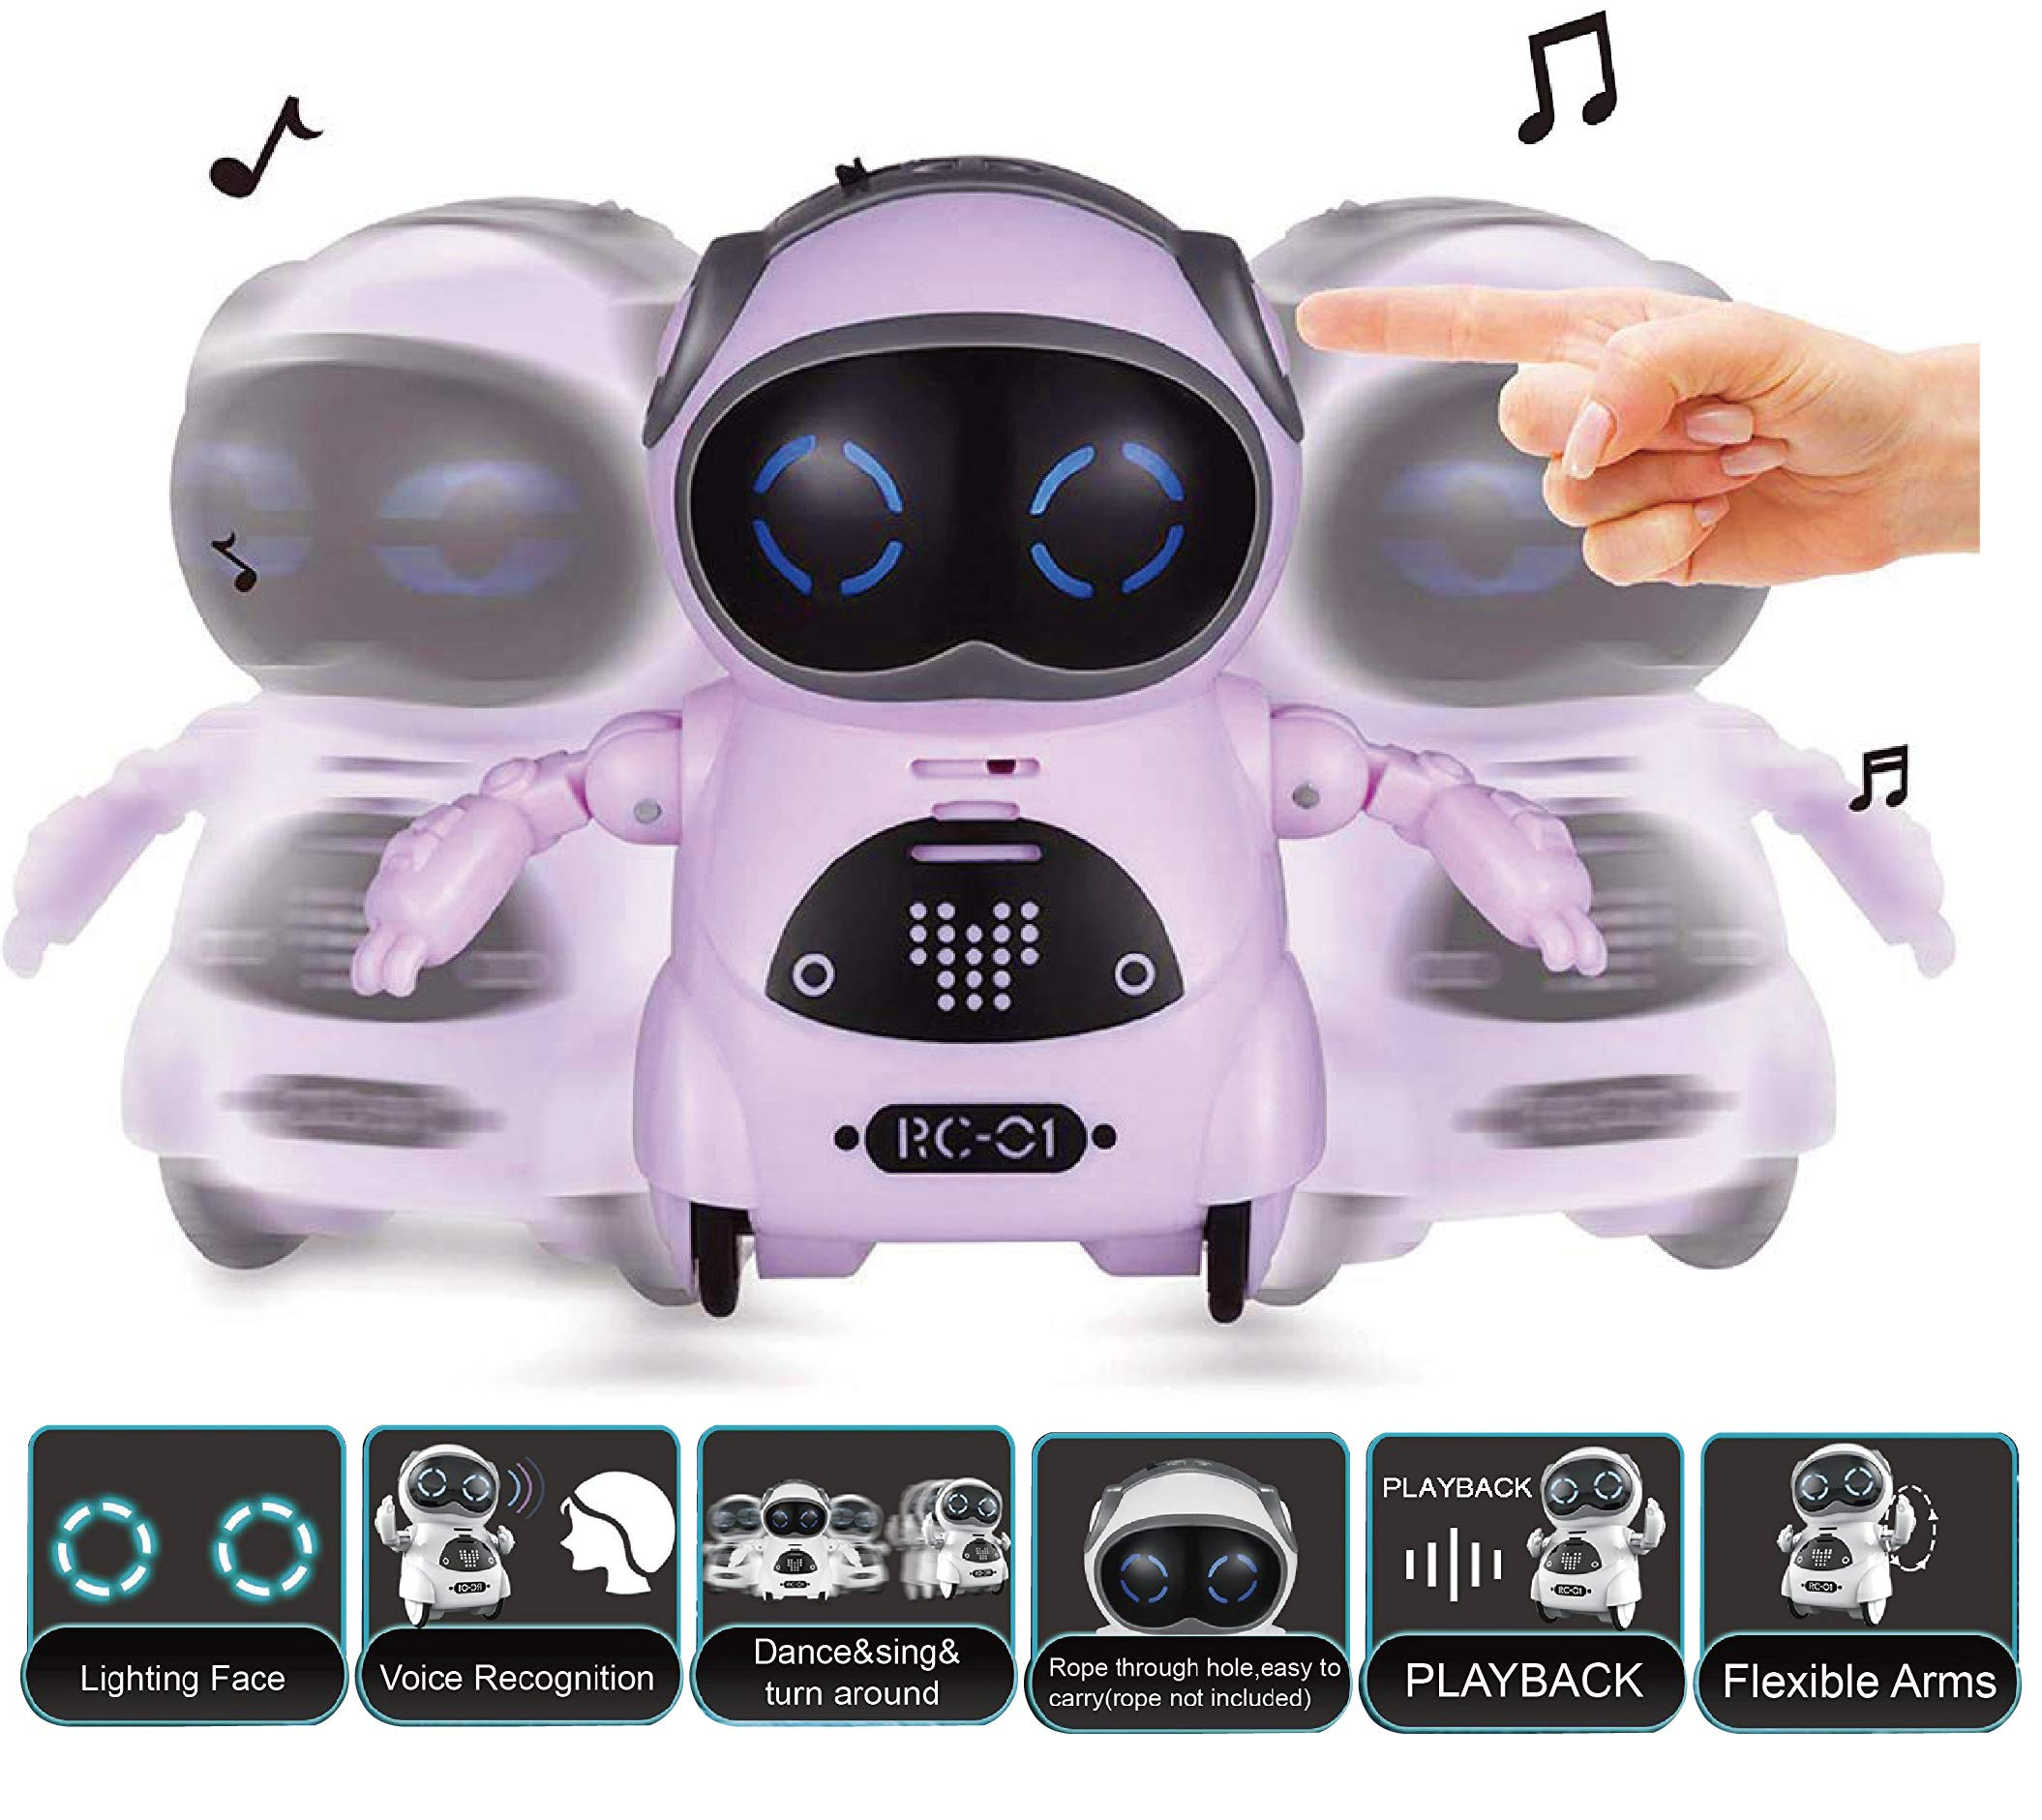 SPACE LION Educational Mini Pocket Robot for Kids Interactive Dialogue Conversation,Voice Control, Chat Record, Singing & Dancing-Pink by SPACE LION (Image #2)